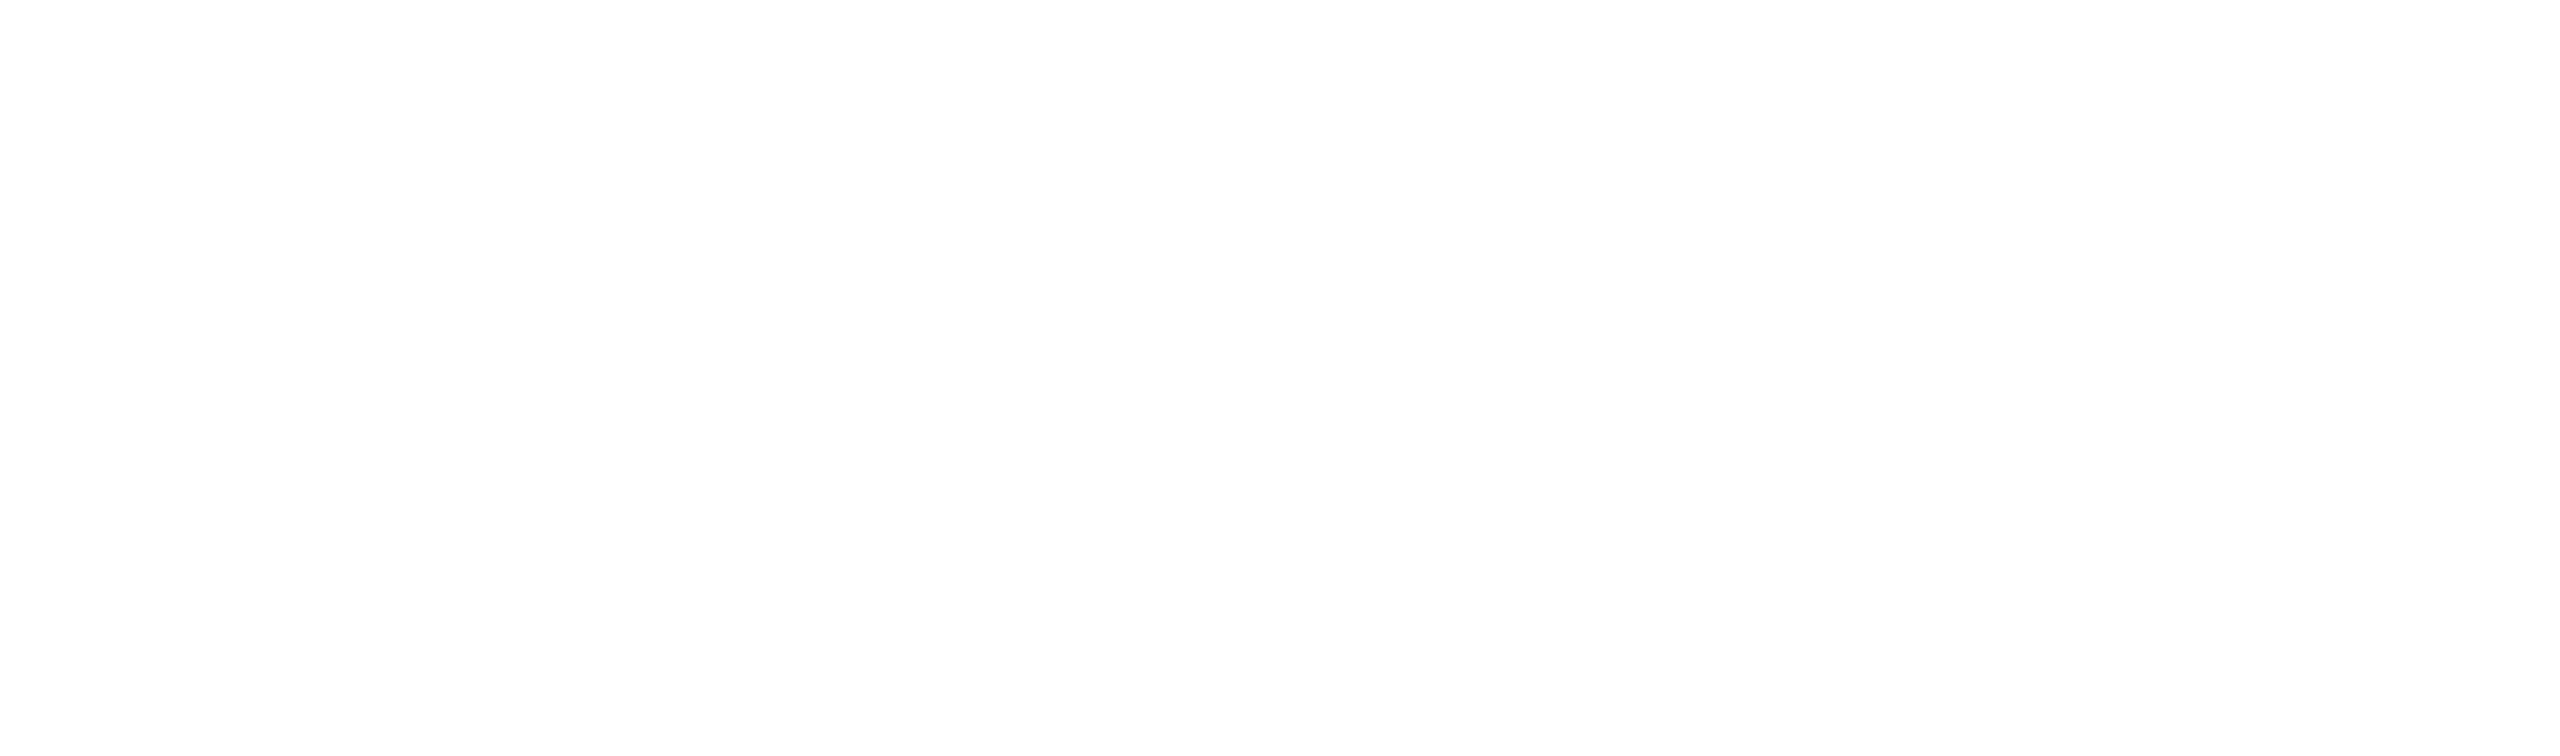 CAROLINE PRODUCTION